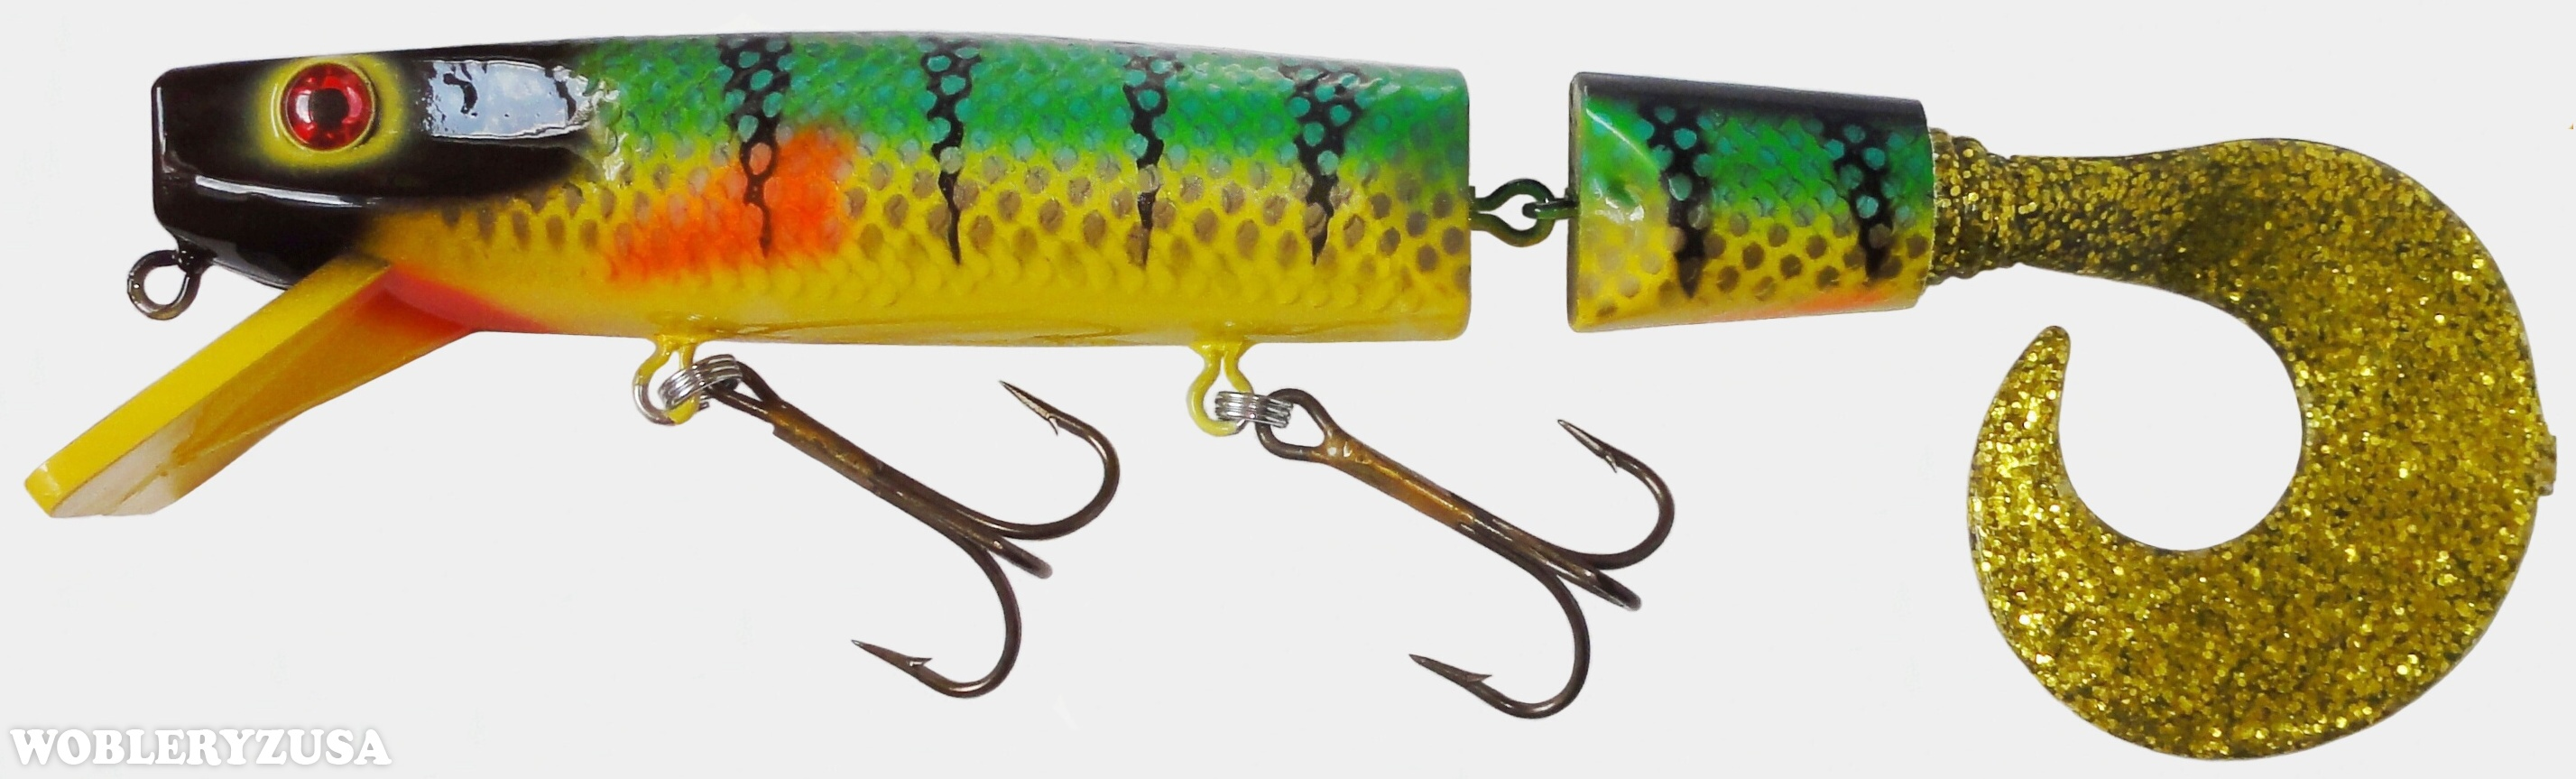 Wobler SUPER STALKER 30 cm - Perch - YB